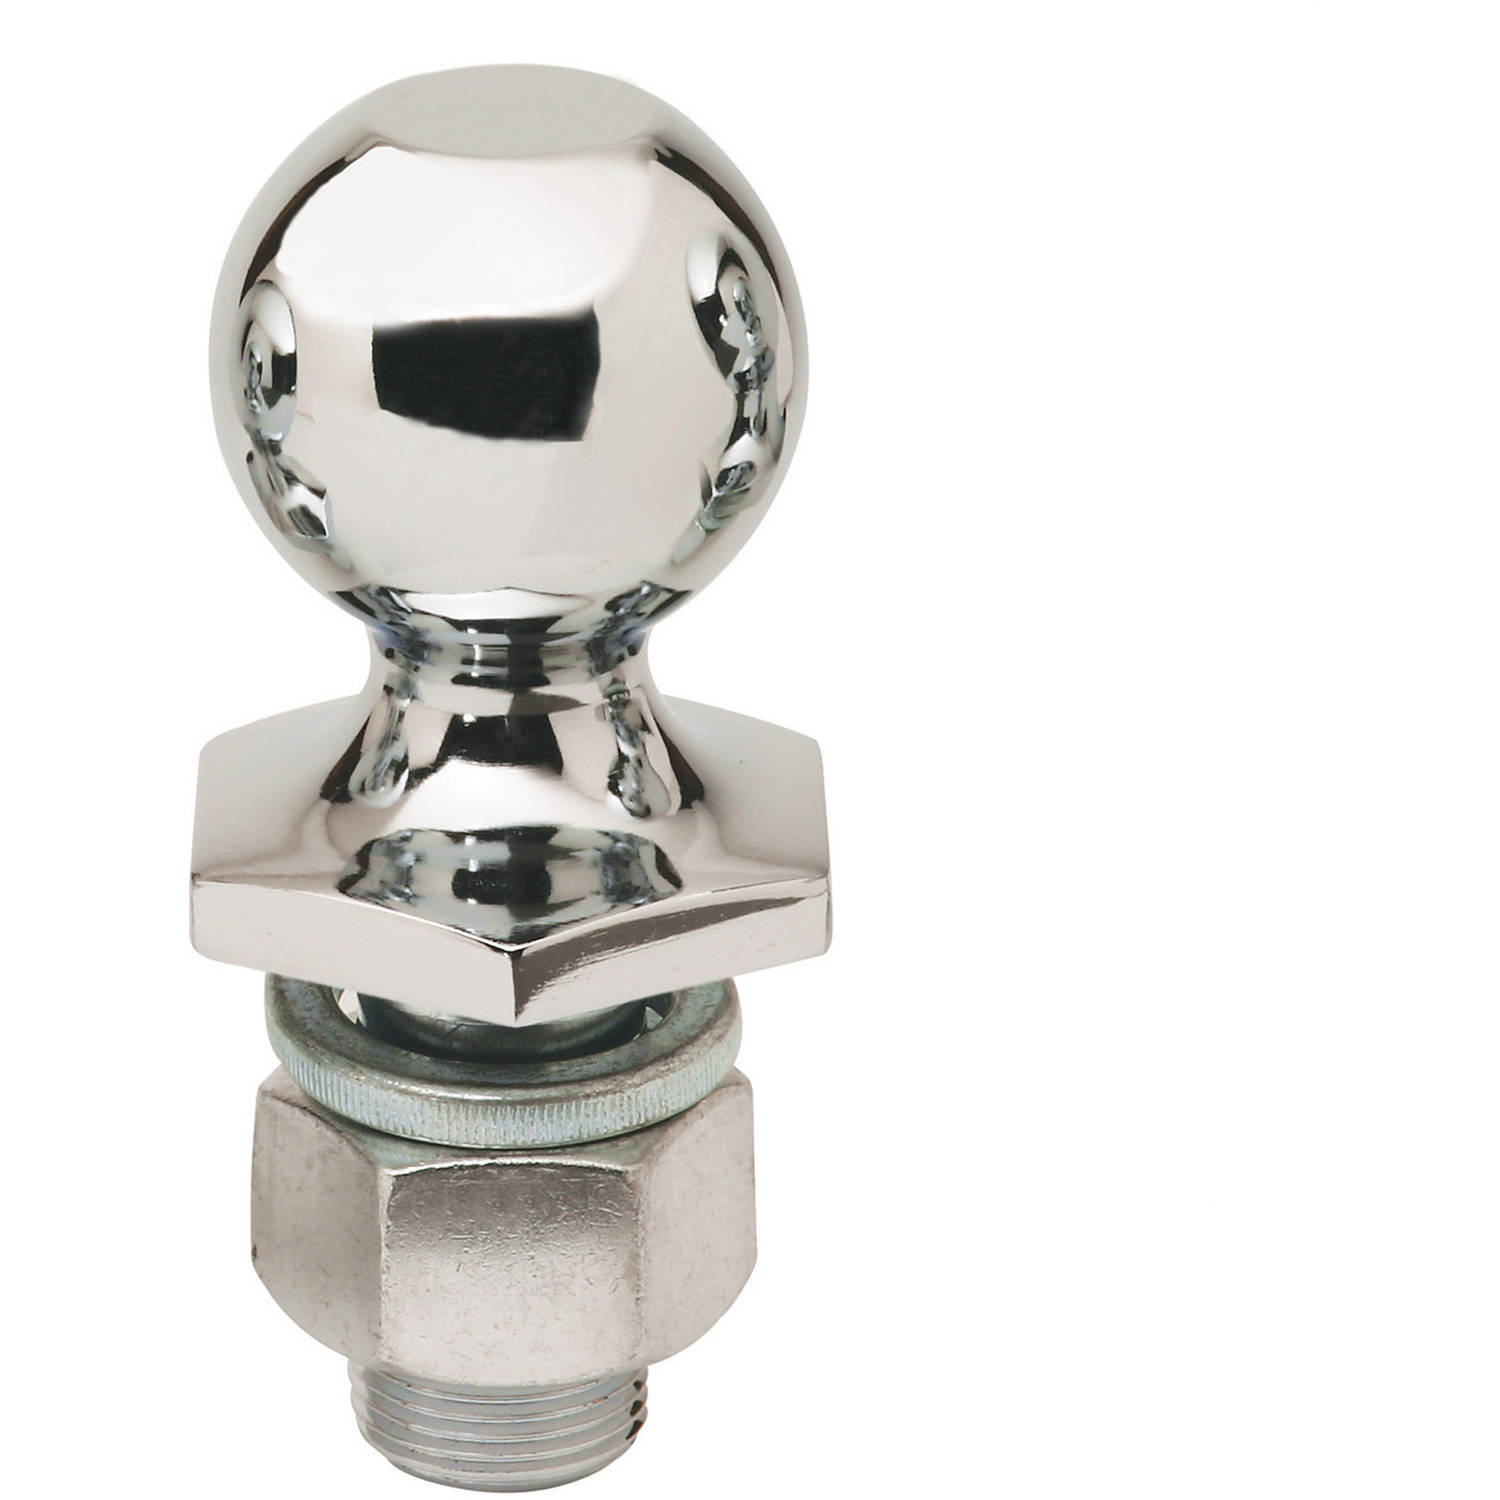 "REESE Towpower 2"" Chrome Interlock Hitch Ball, Model# 7022220"